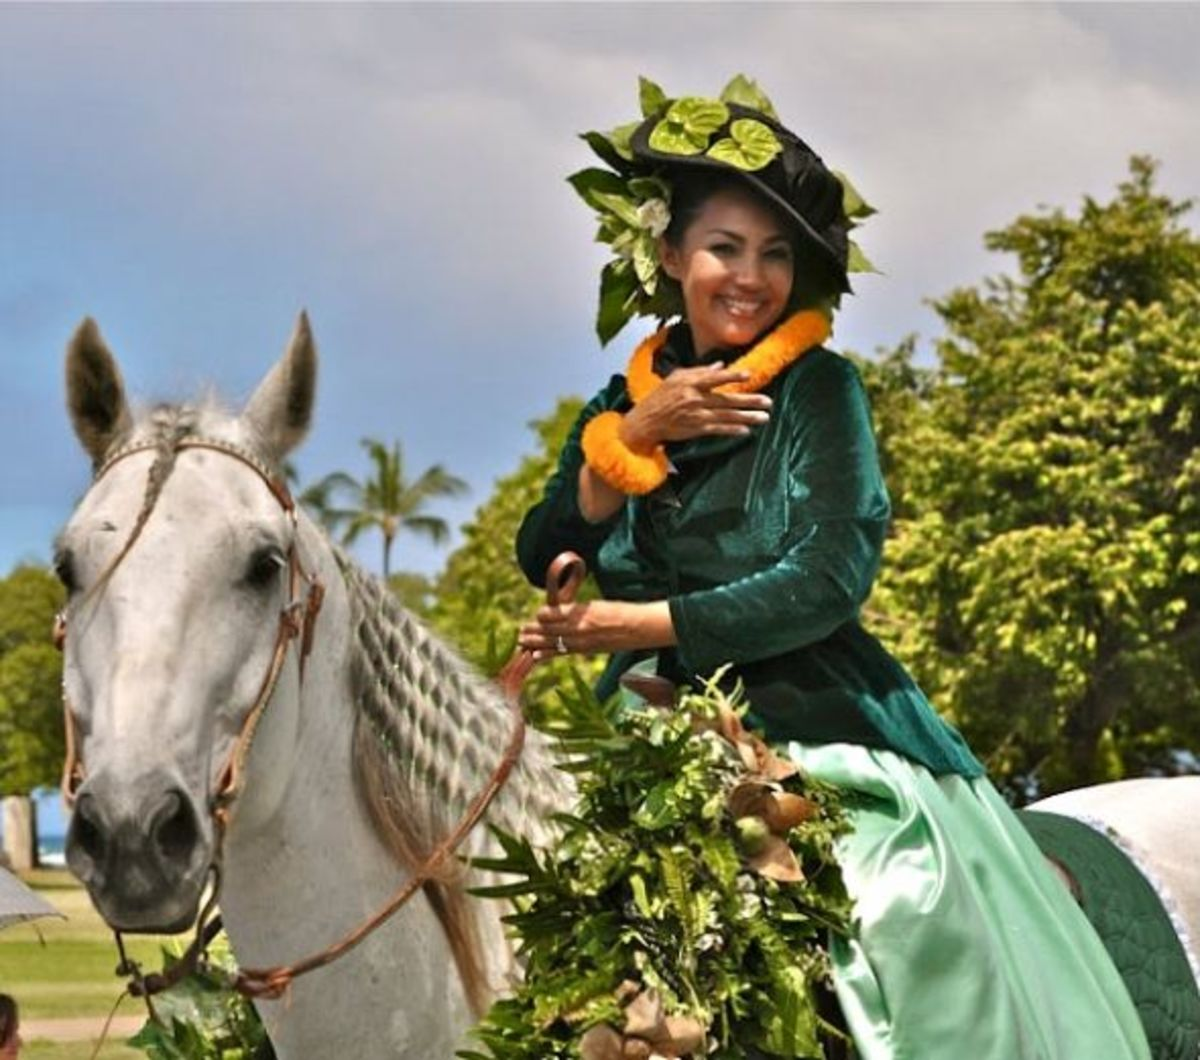 Pau Rider Representing Island of Moloka'i in Honolulu's King Kam Parade